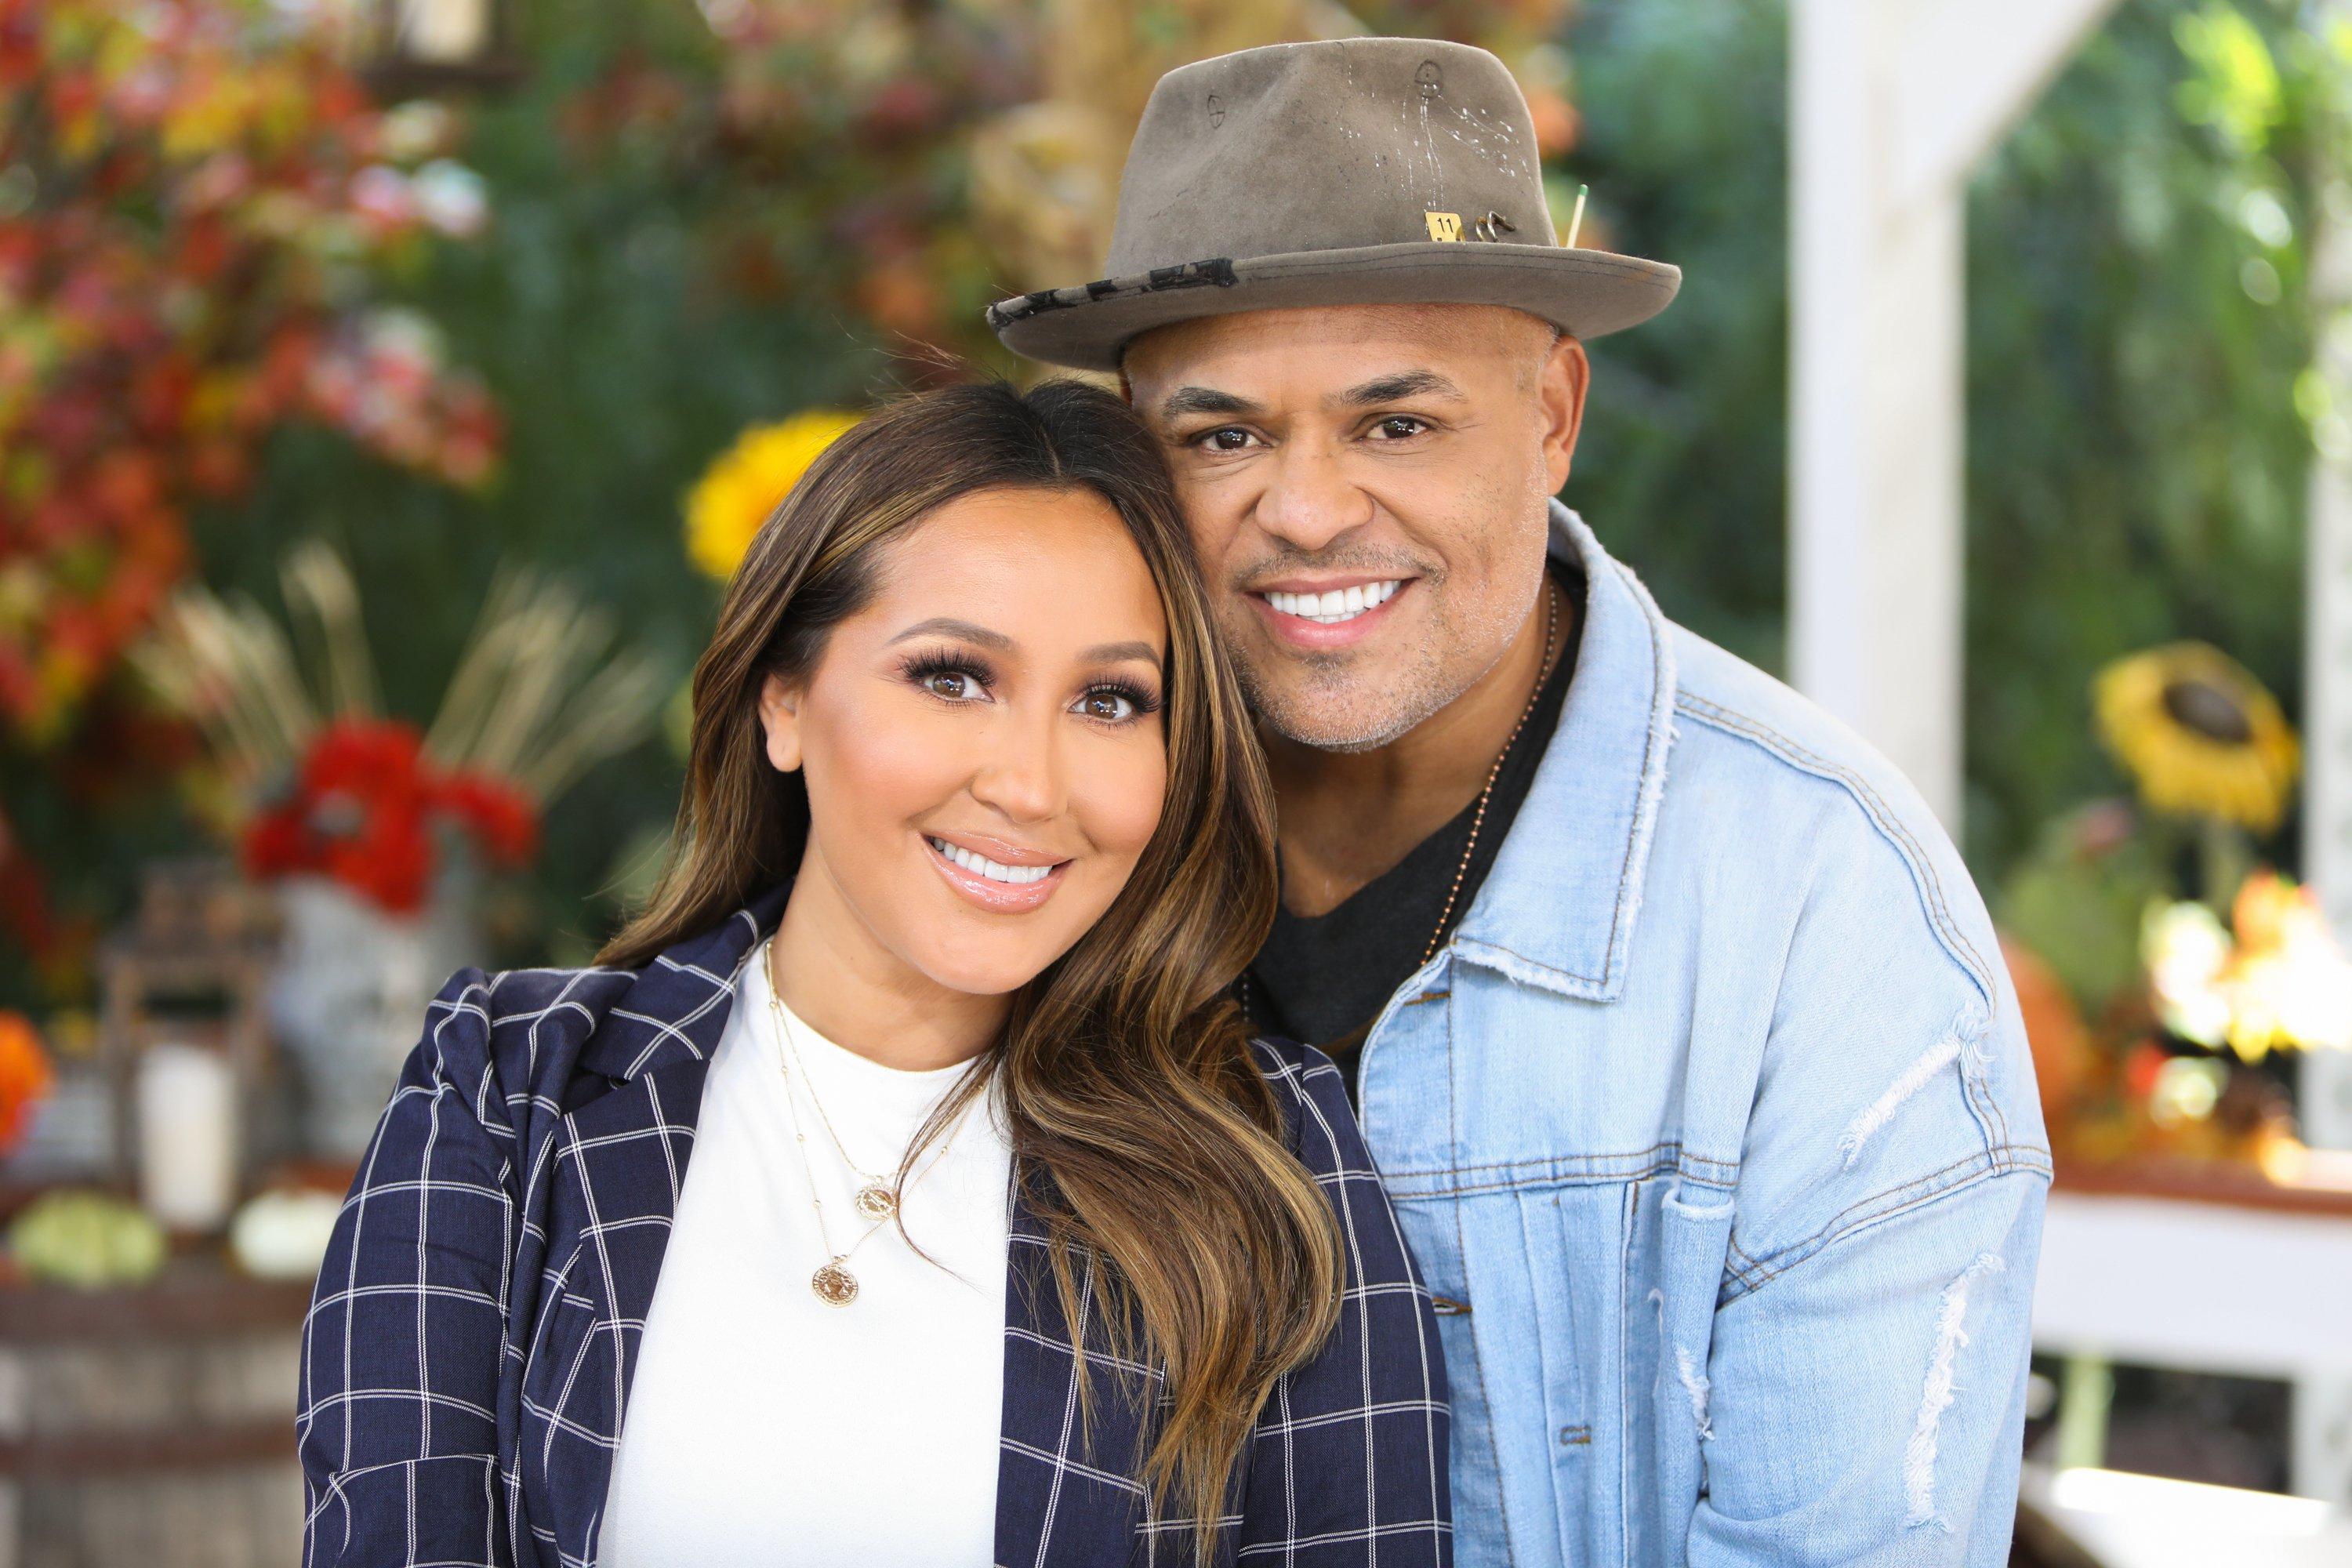 """Adrienne Houghton and Israel Houghton  visit Hallmark's """"Home & Family"""" at Universal Studios Hollywood on October 5, 2018  